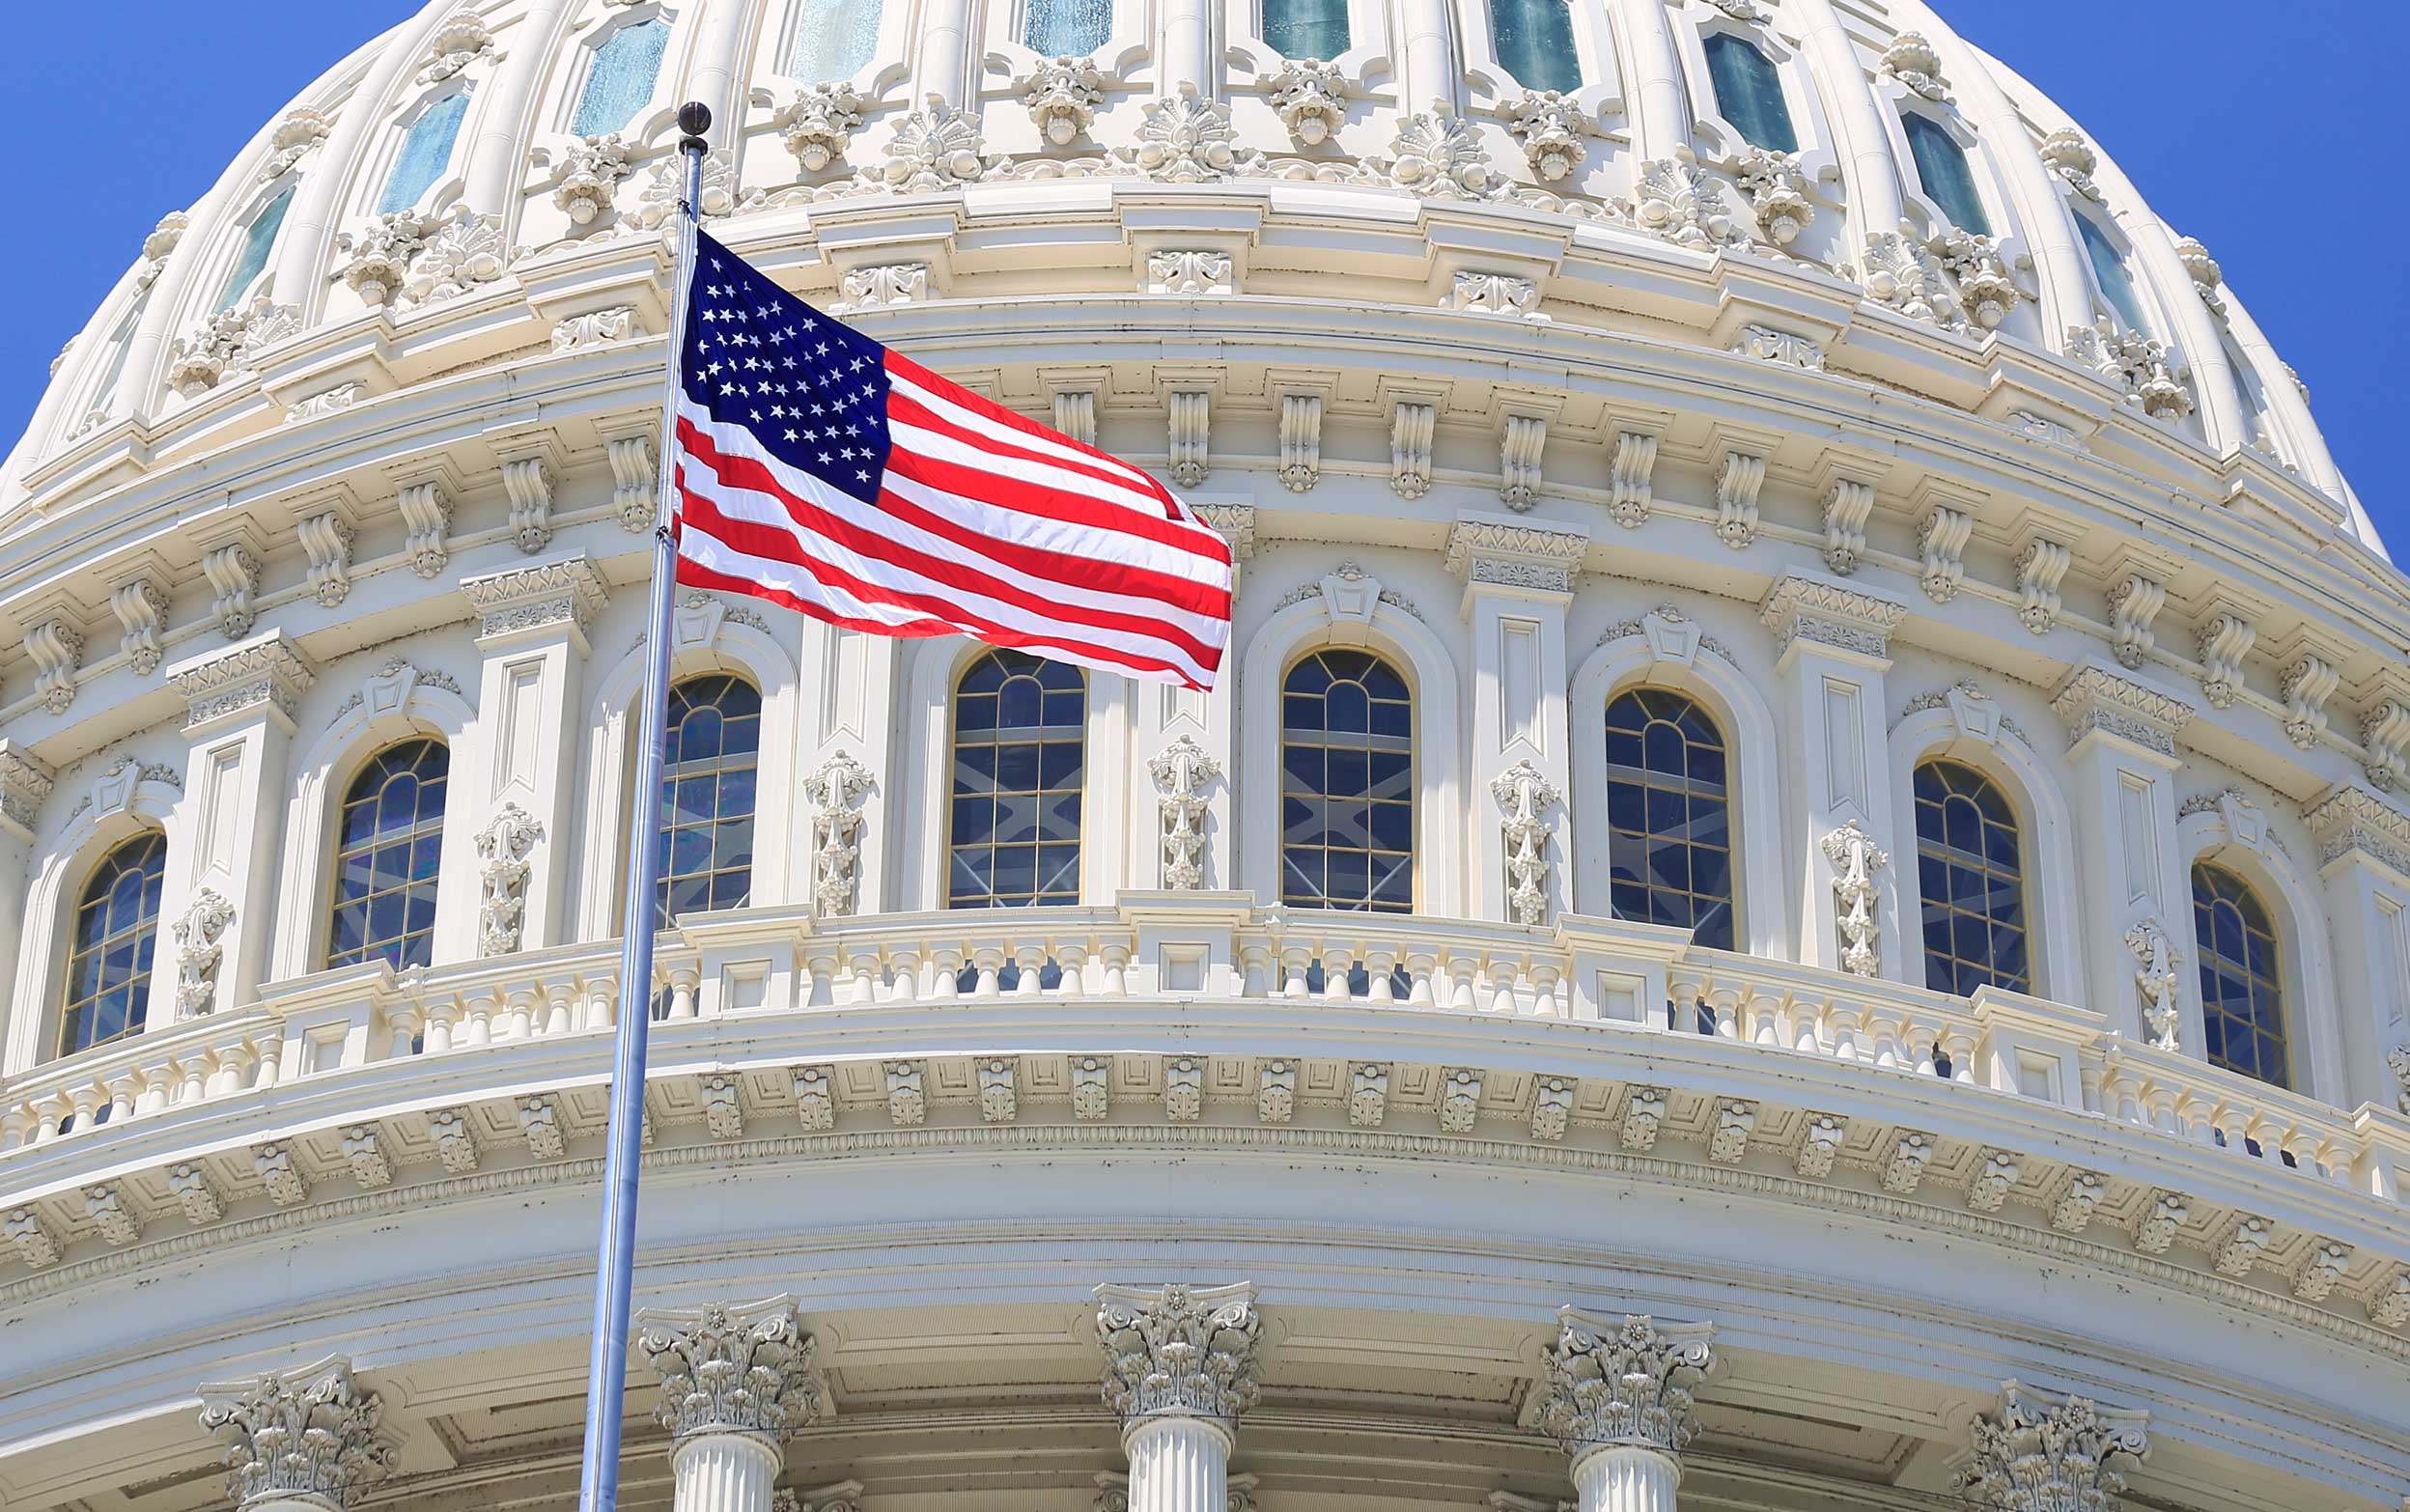 Flag waving in the air outside of the U.S. Capitol building